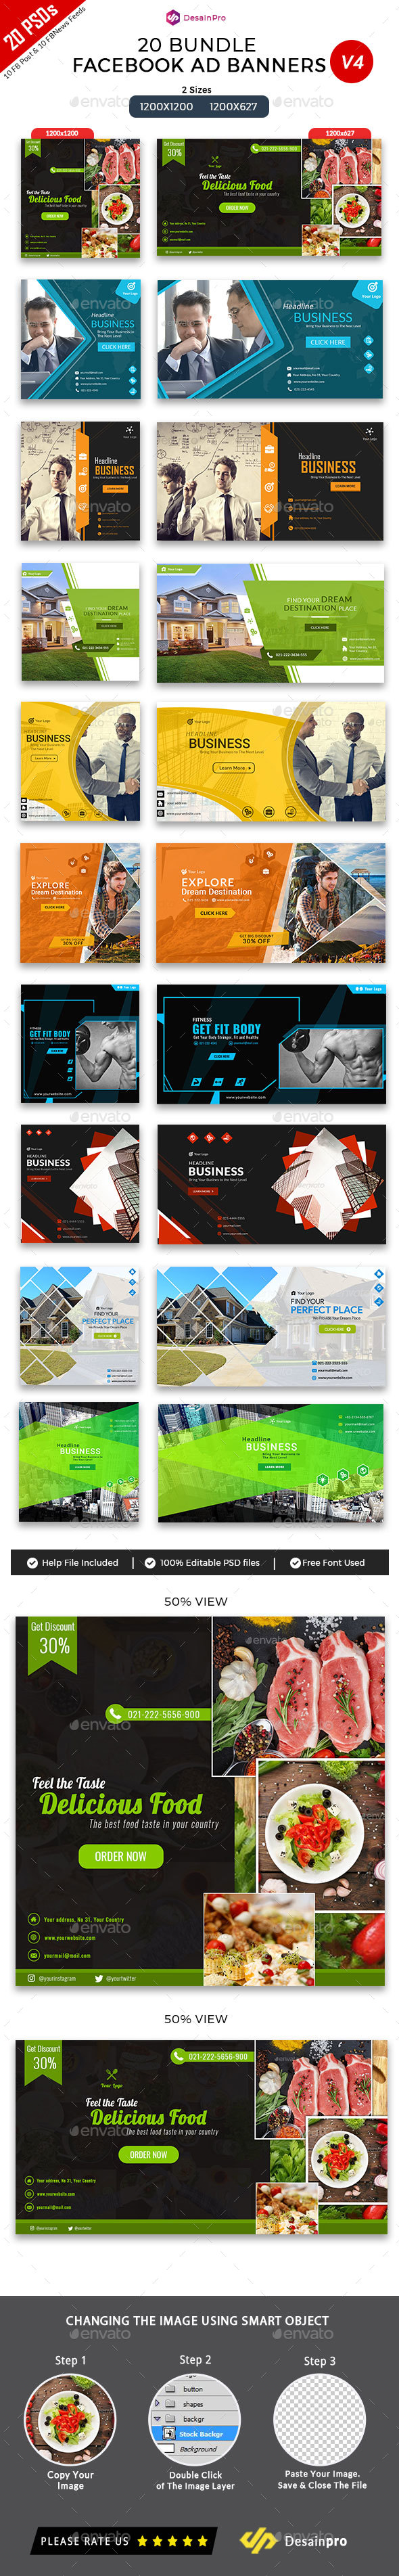 20 Facebook Ad Banners V4 Bundle - AR - Social Media Web Elements